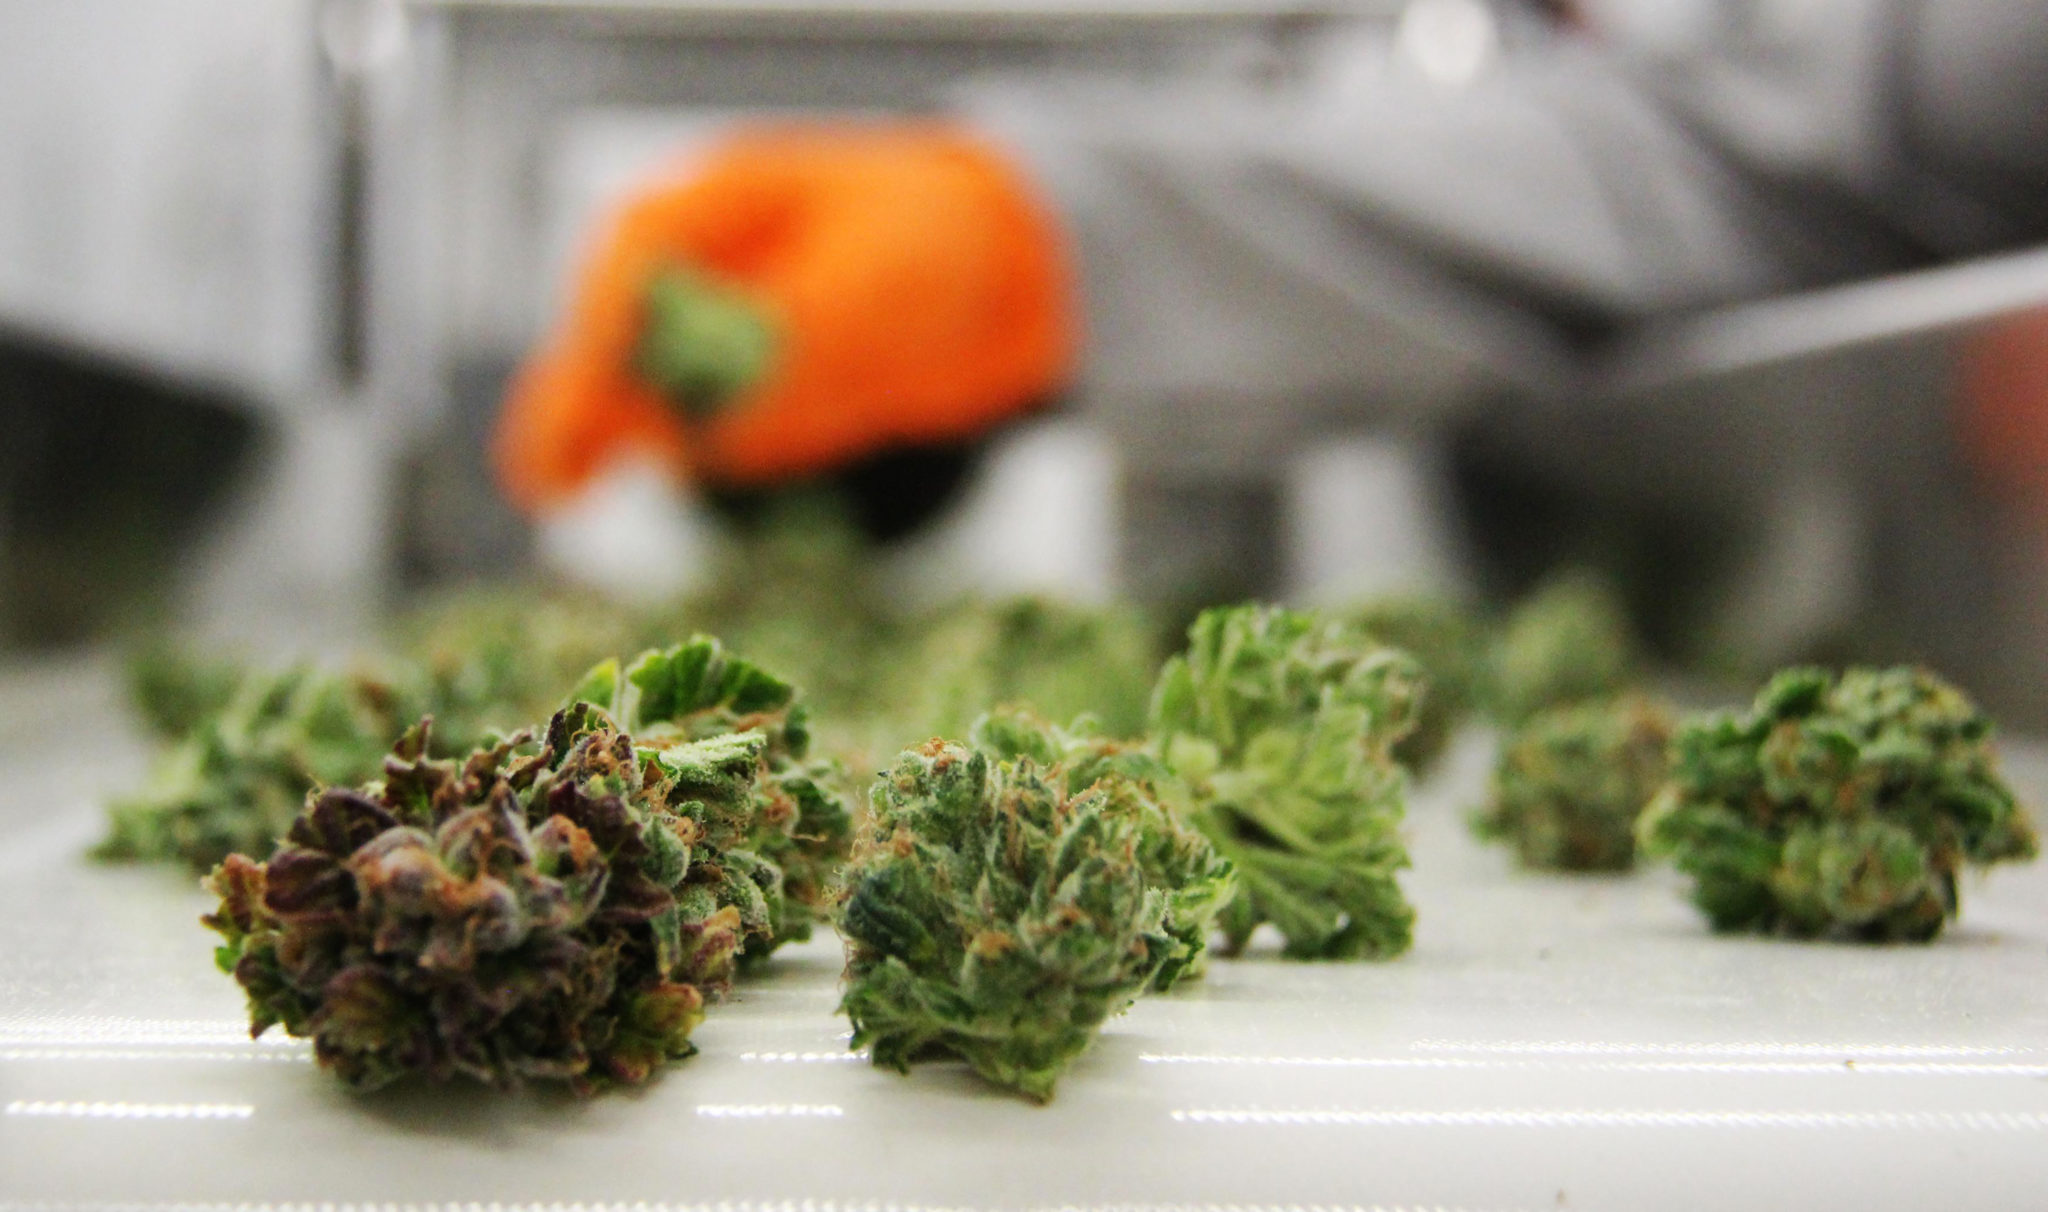 Canopy cuts undisclosed number of jobs from Ont. facility